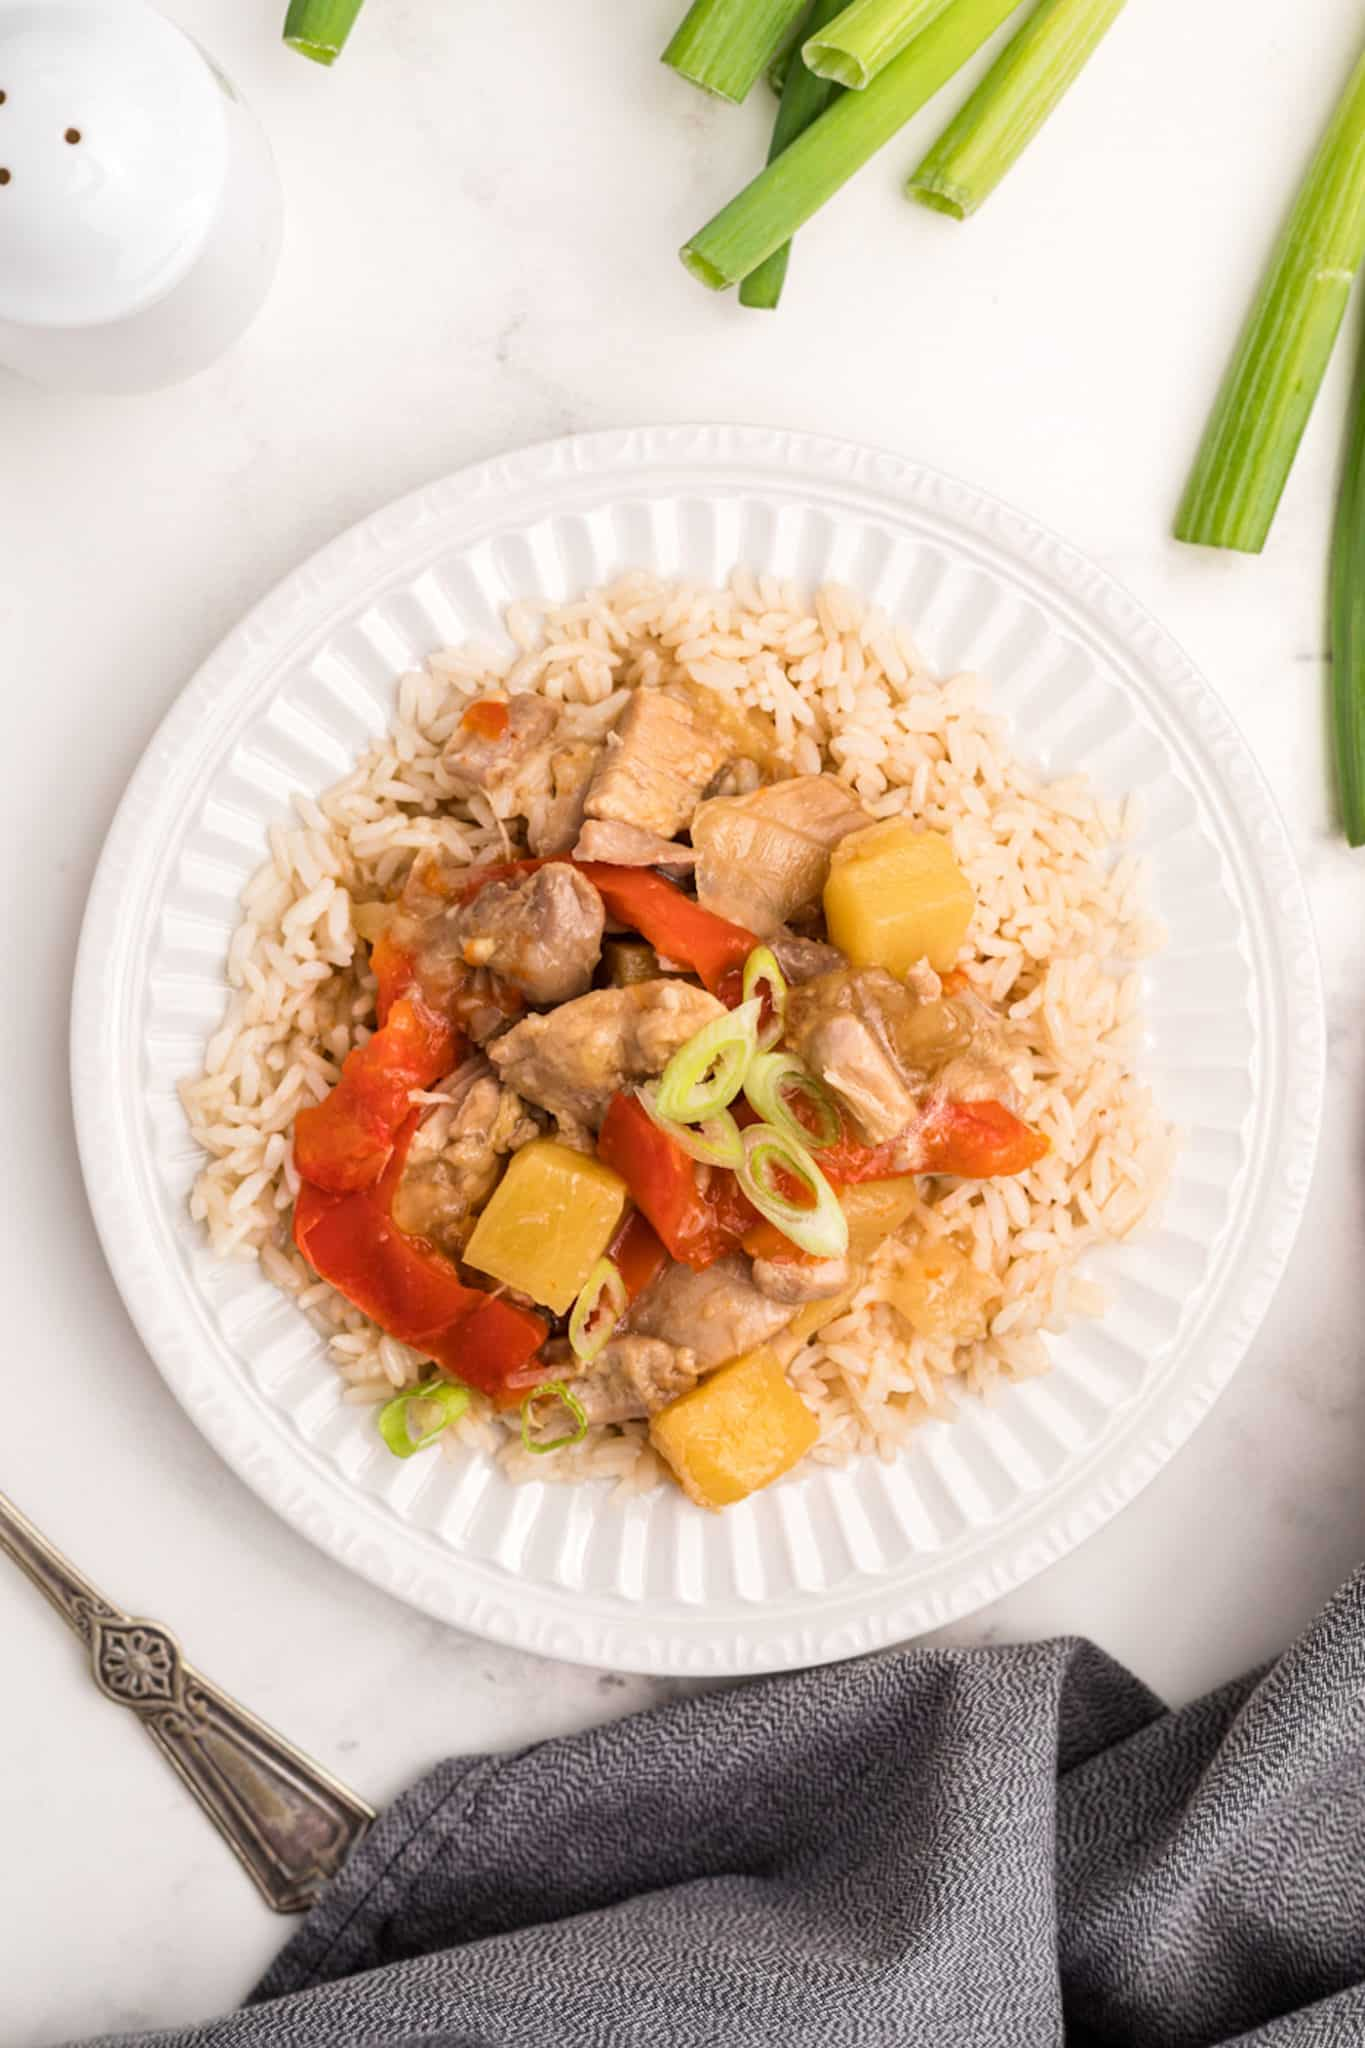 plate of pineapple chicken with veggies and steamed rice